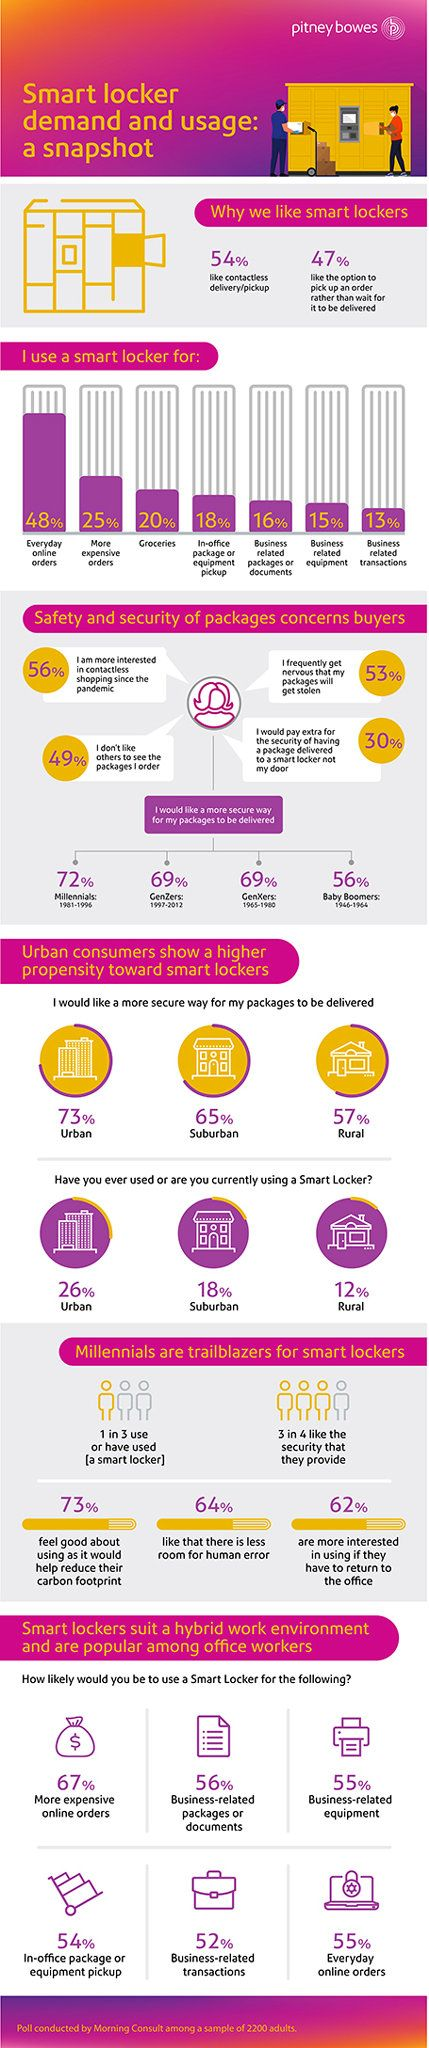 Workplace Staff Amongst These Most More likely to Favor Sensible Lockers to Get Packages Securely